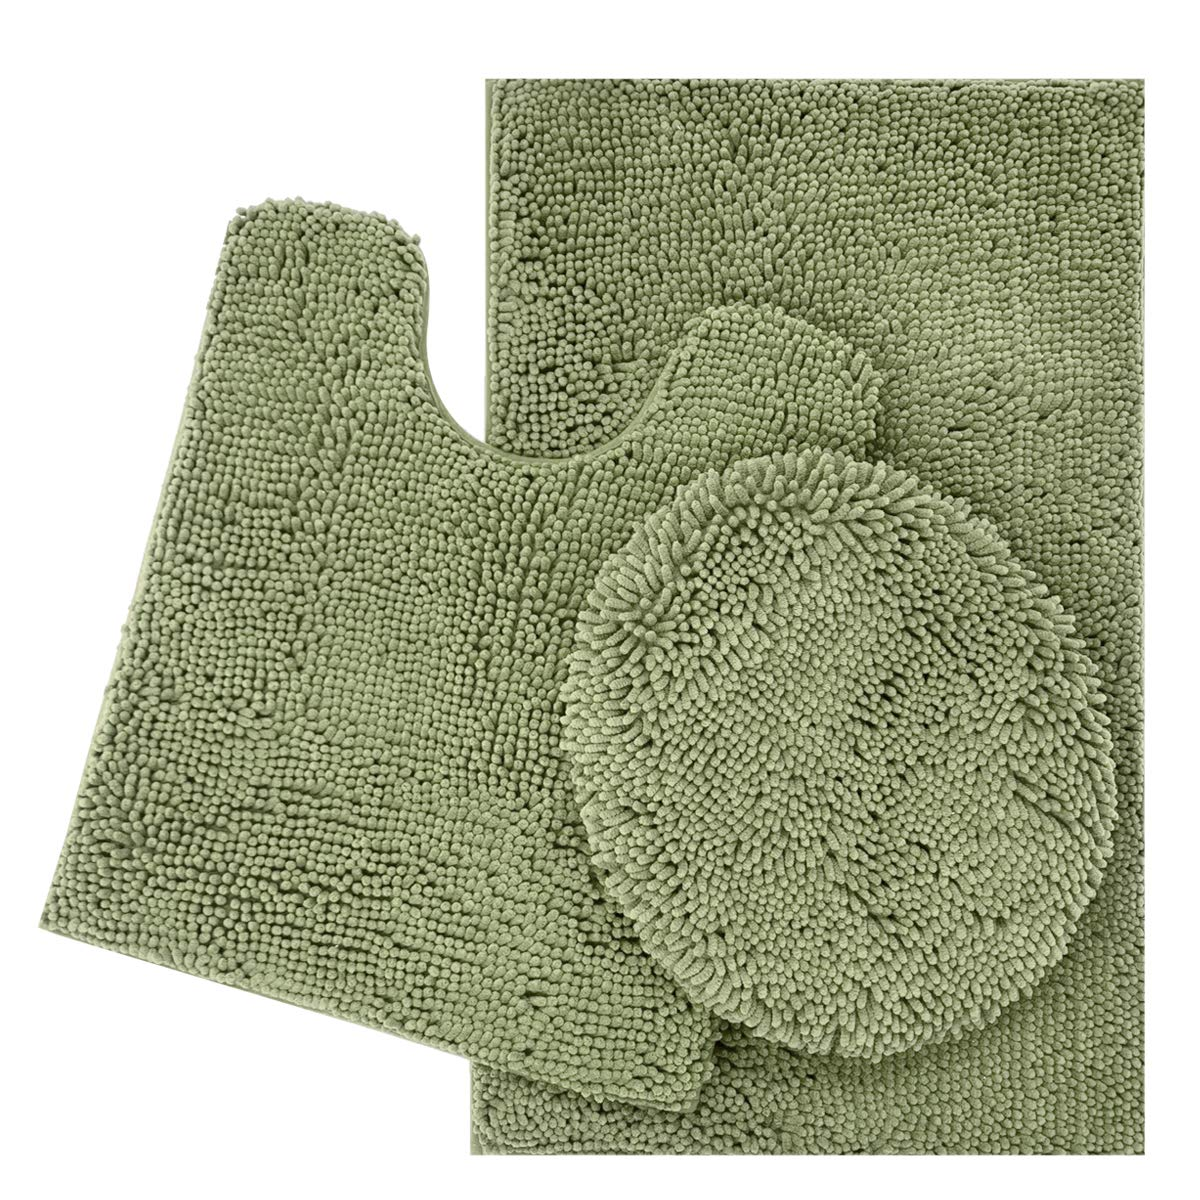 ITSOFT 3pc Non-Slip Shaggy Chenille Bathroom Mat Set, Includes U-Shaped Contour Toilet Mat, Bath Mat and Toilet Lid Cover, Machine Washable, Sage Green by ITSOFT (Image #1)